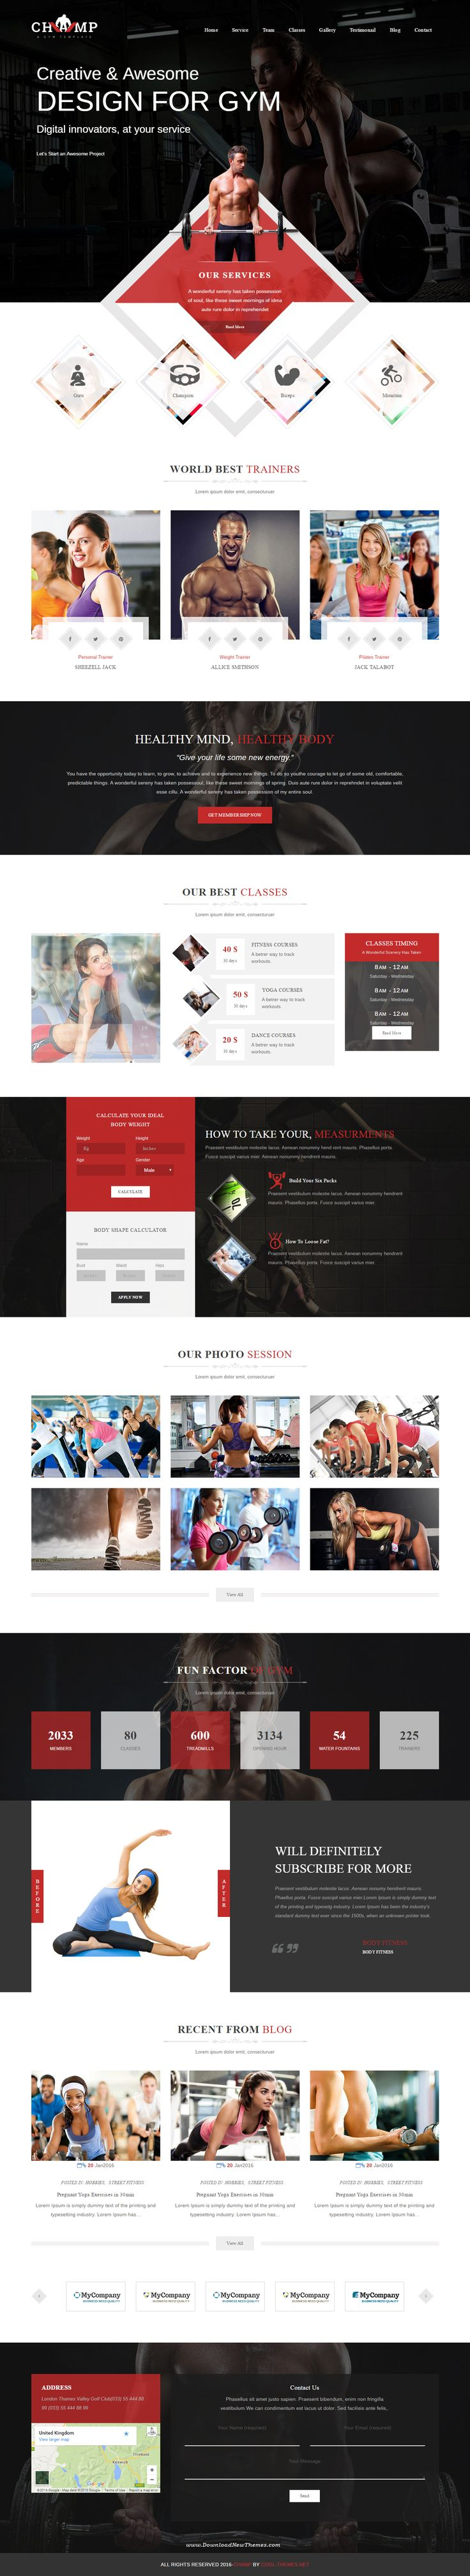 Champ - Gym, Fitness & Yoga WordPress Theme for Creative and Modern Website #webdevelopment #yogagirl #pinterest100 #inspiration